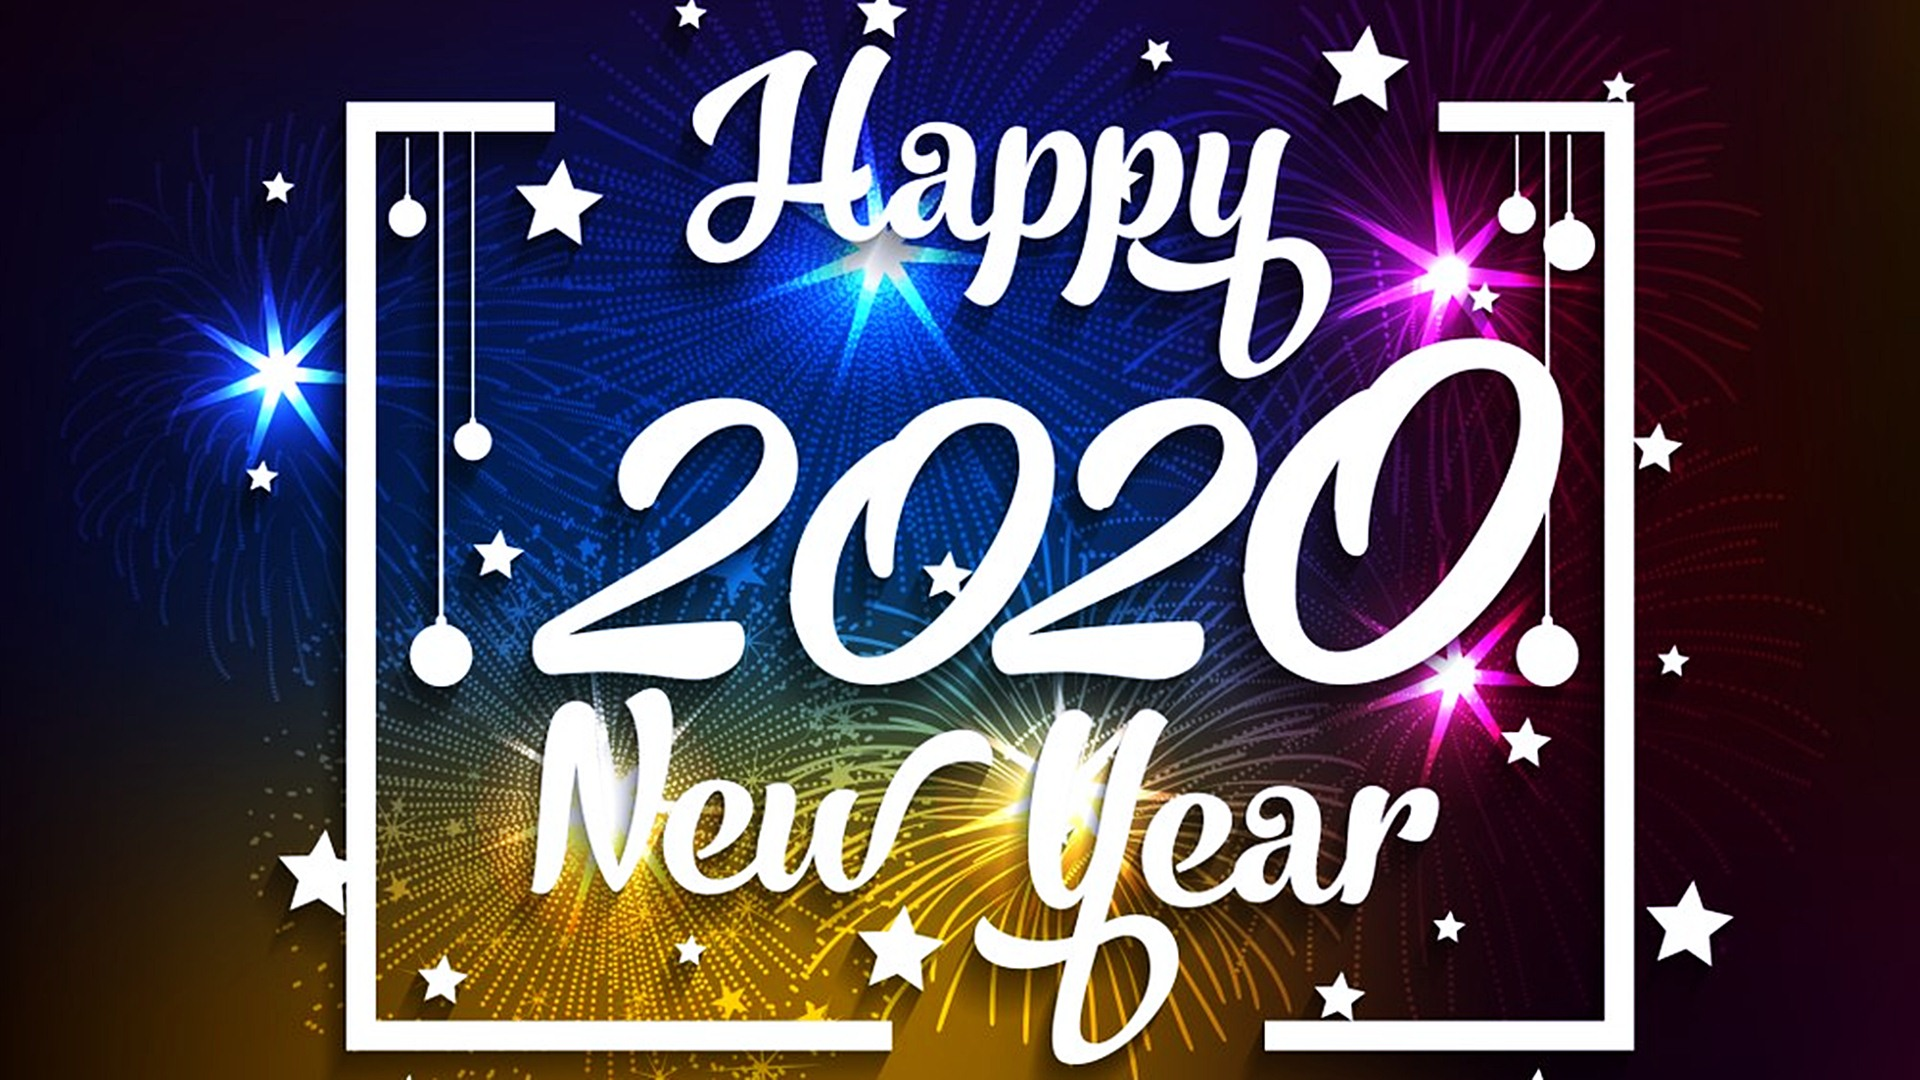 Happy New Year 2020 HD Wallpapers 45551   Baltana 1920x1080